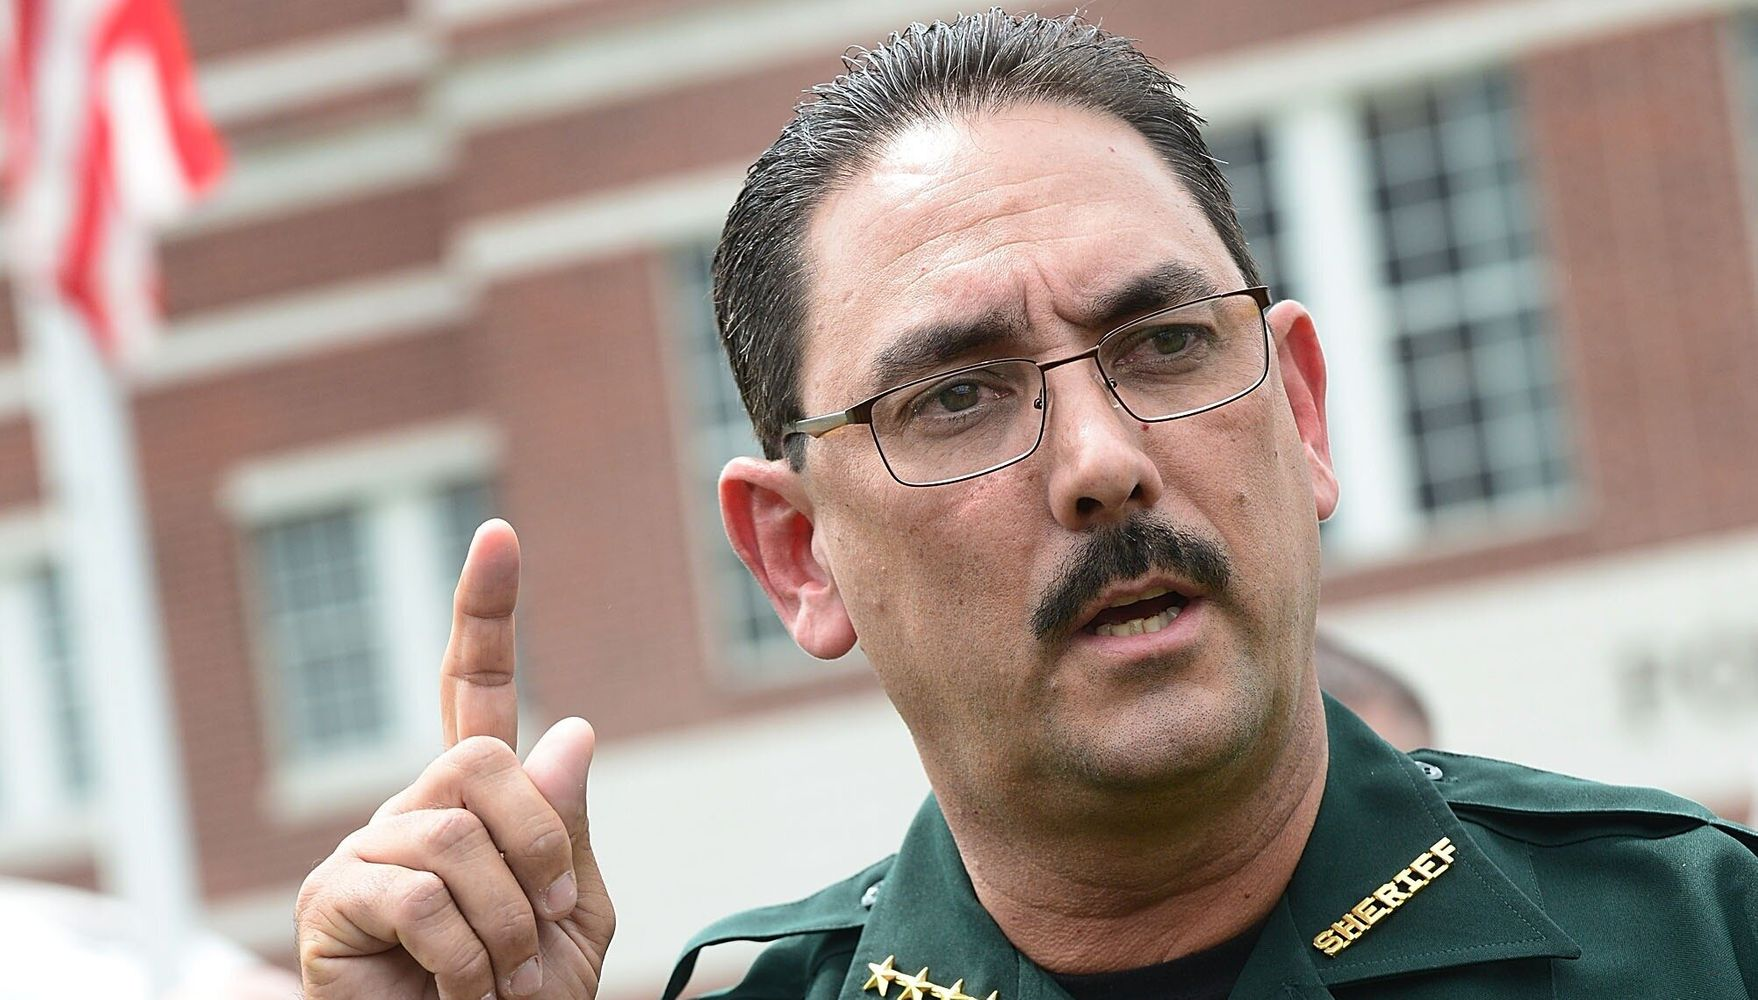 Florida Sheriff In COVID-19 Hot Spot Decrees No Face Masks For Deputies